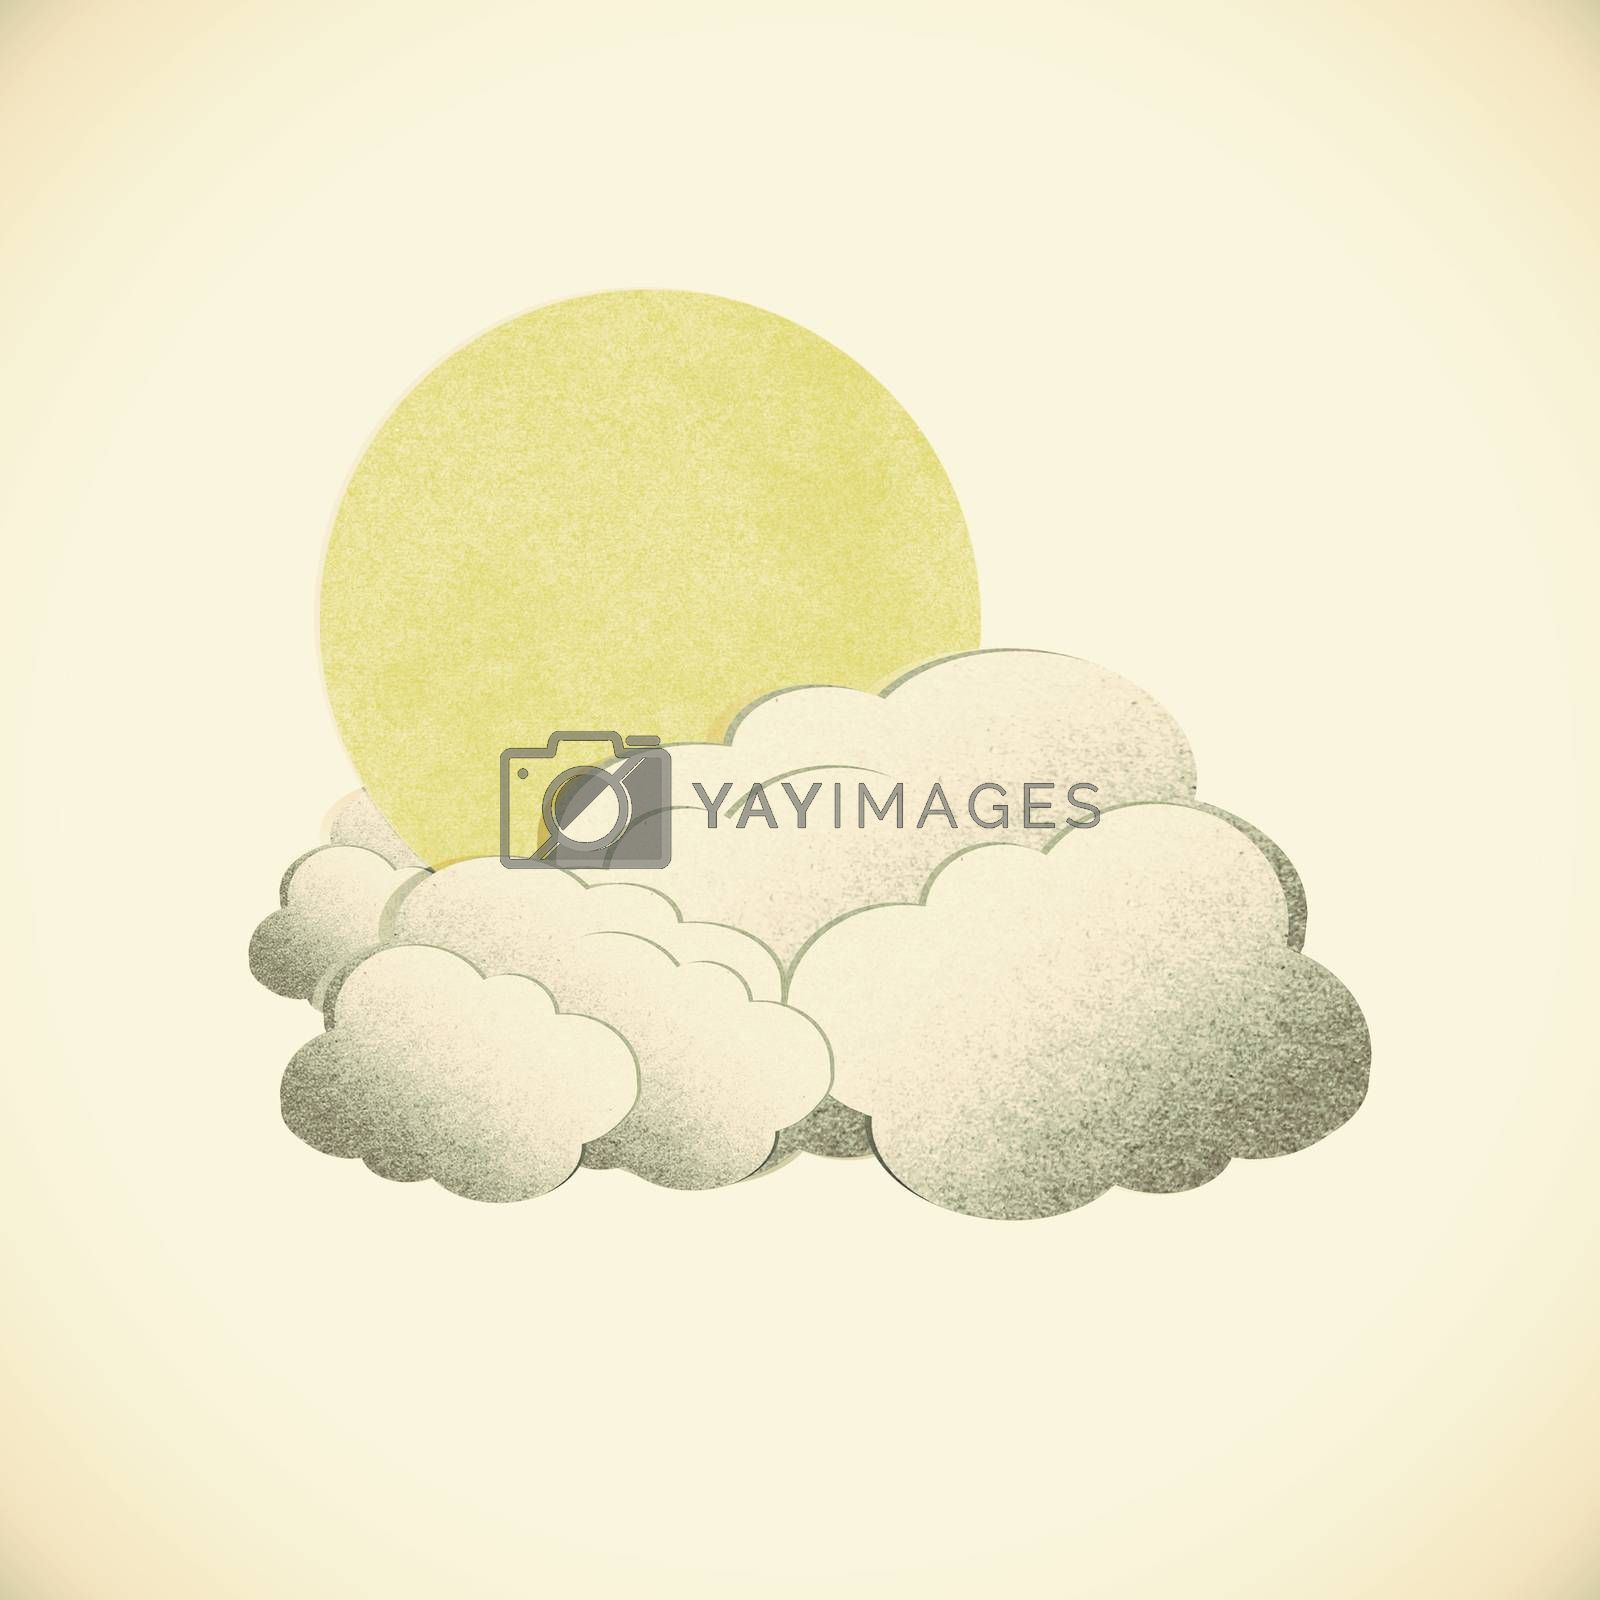 Grunge recycled paper moon and cloud on vintage tone  backgroun by jakgree